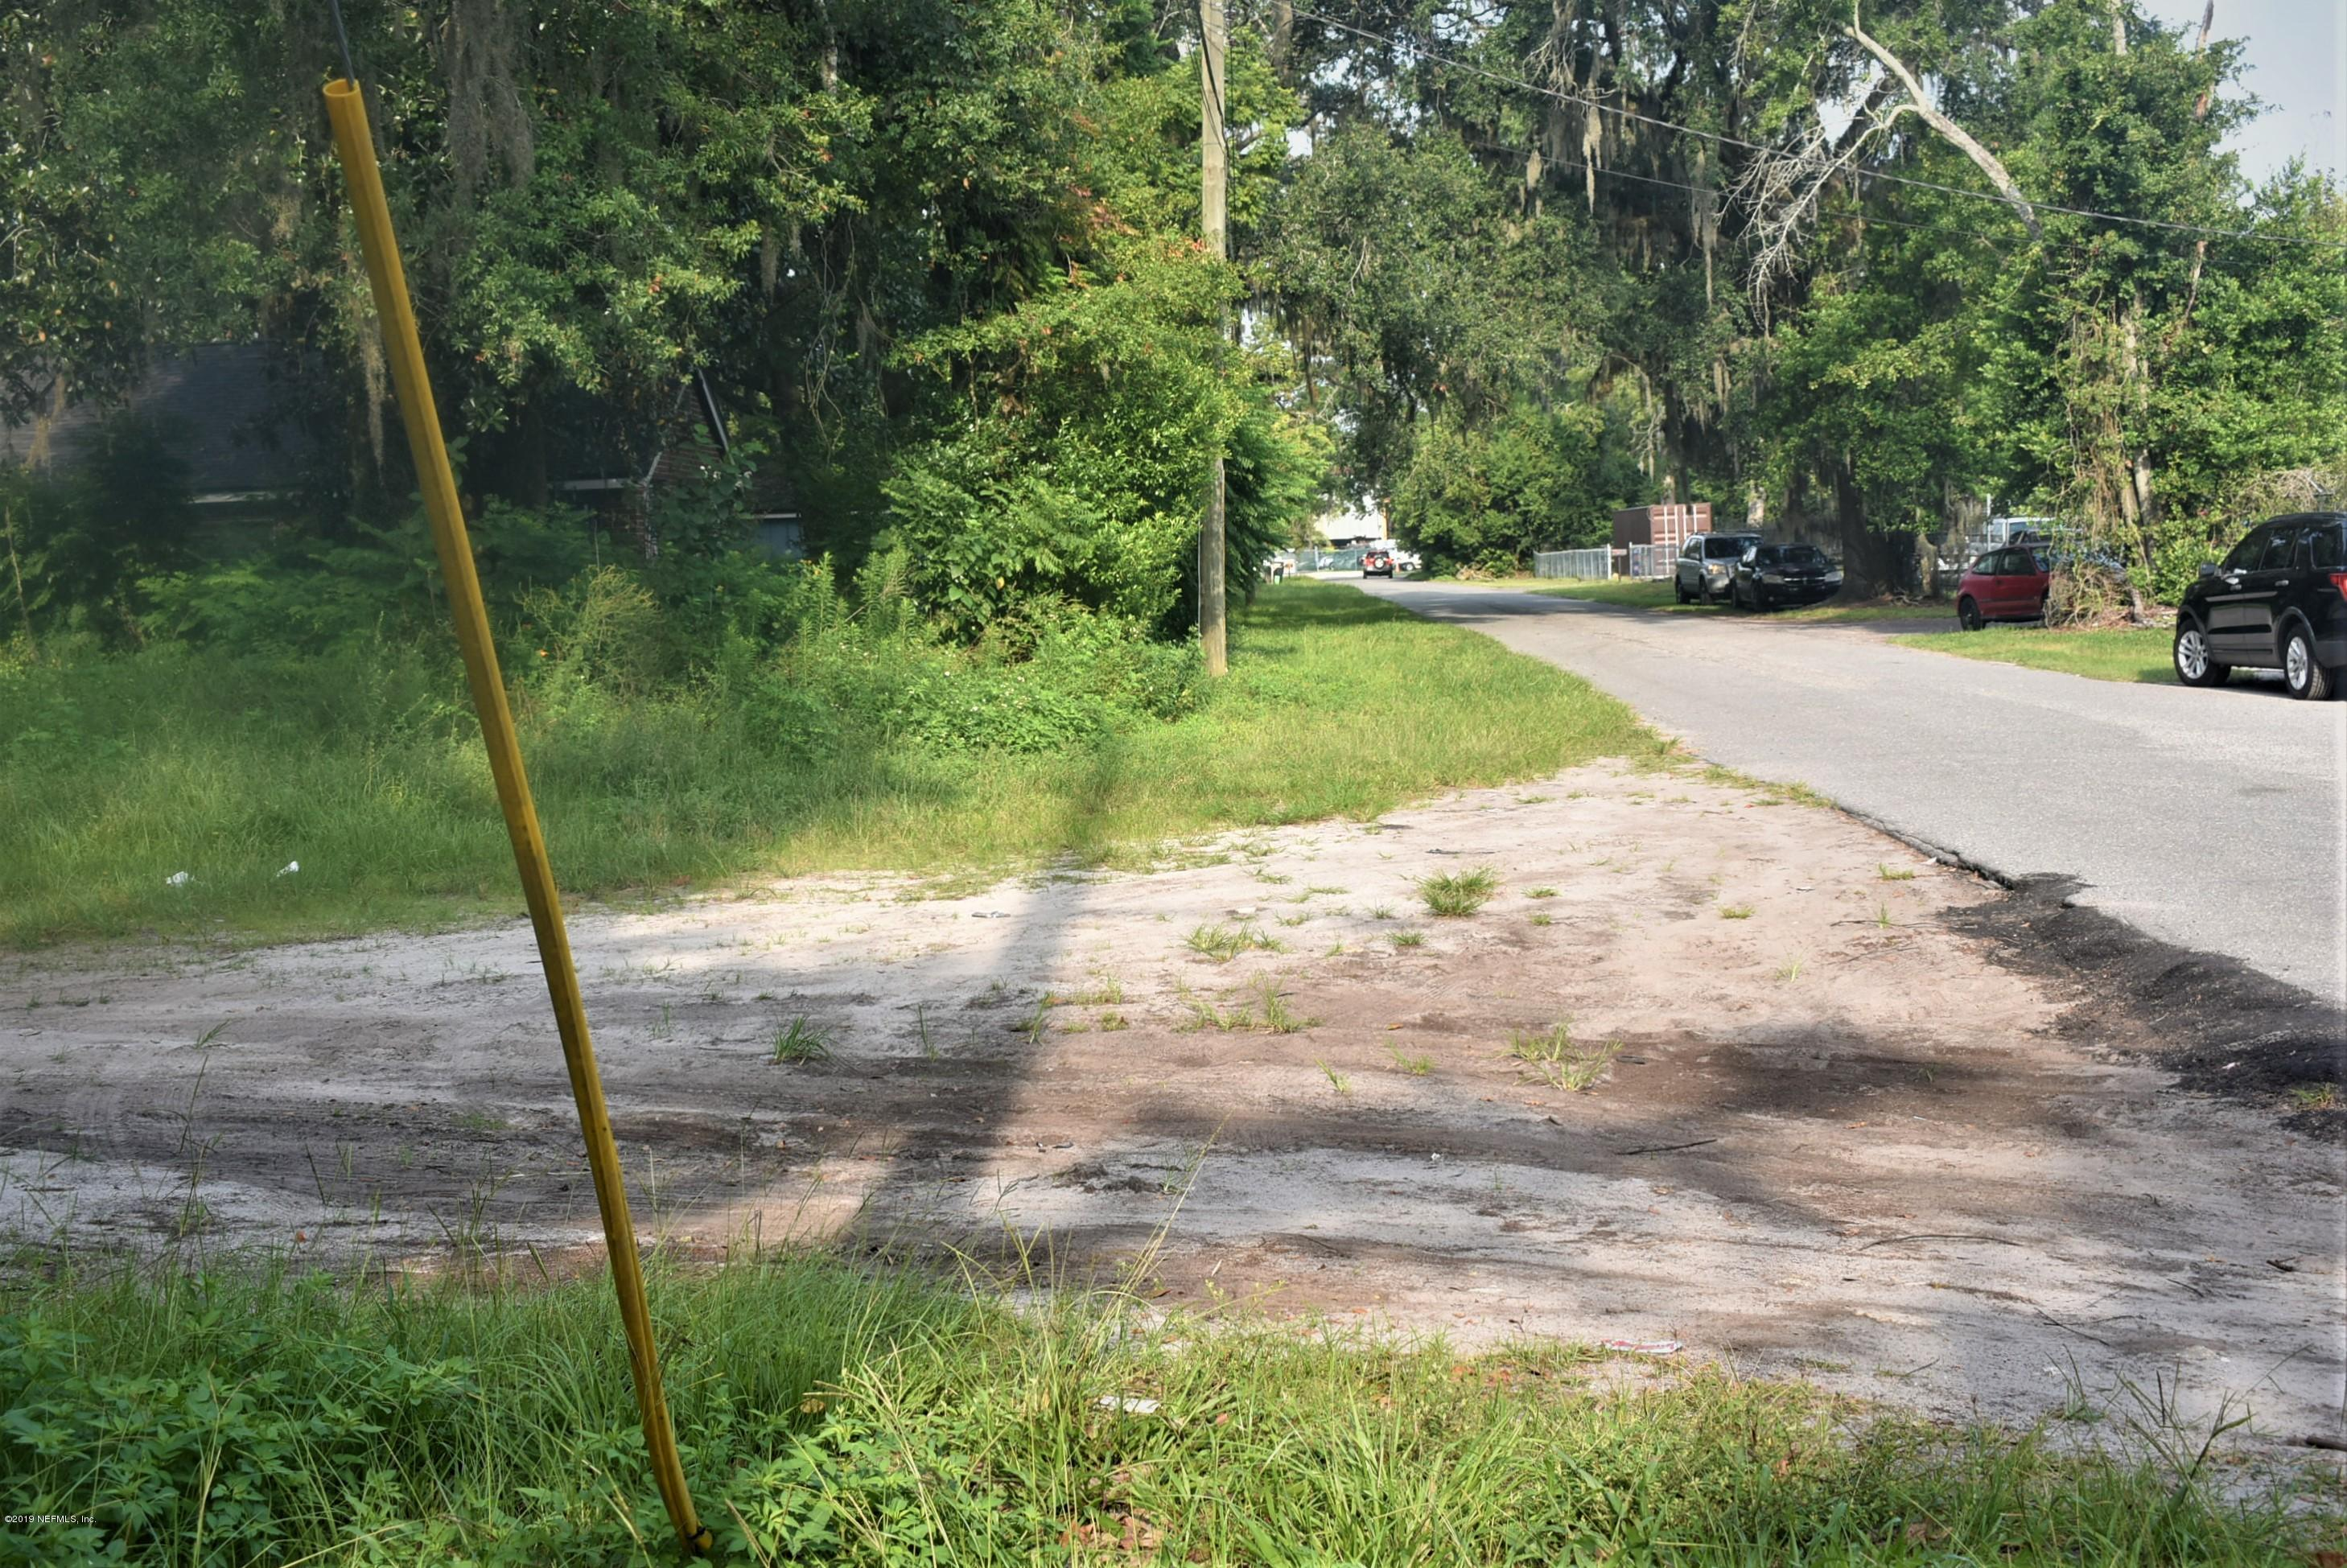 0 CAHOON, JACKSONVILLE, FLORIDA 32220, ,Commercial,For sale,CAHOON,1013533